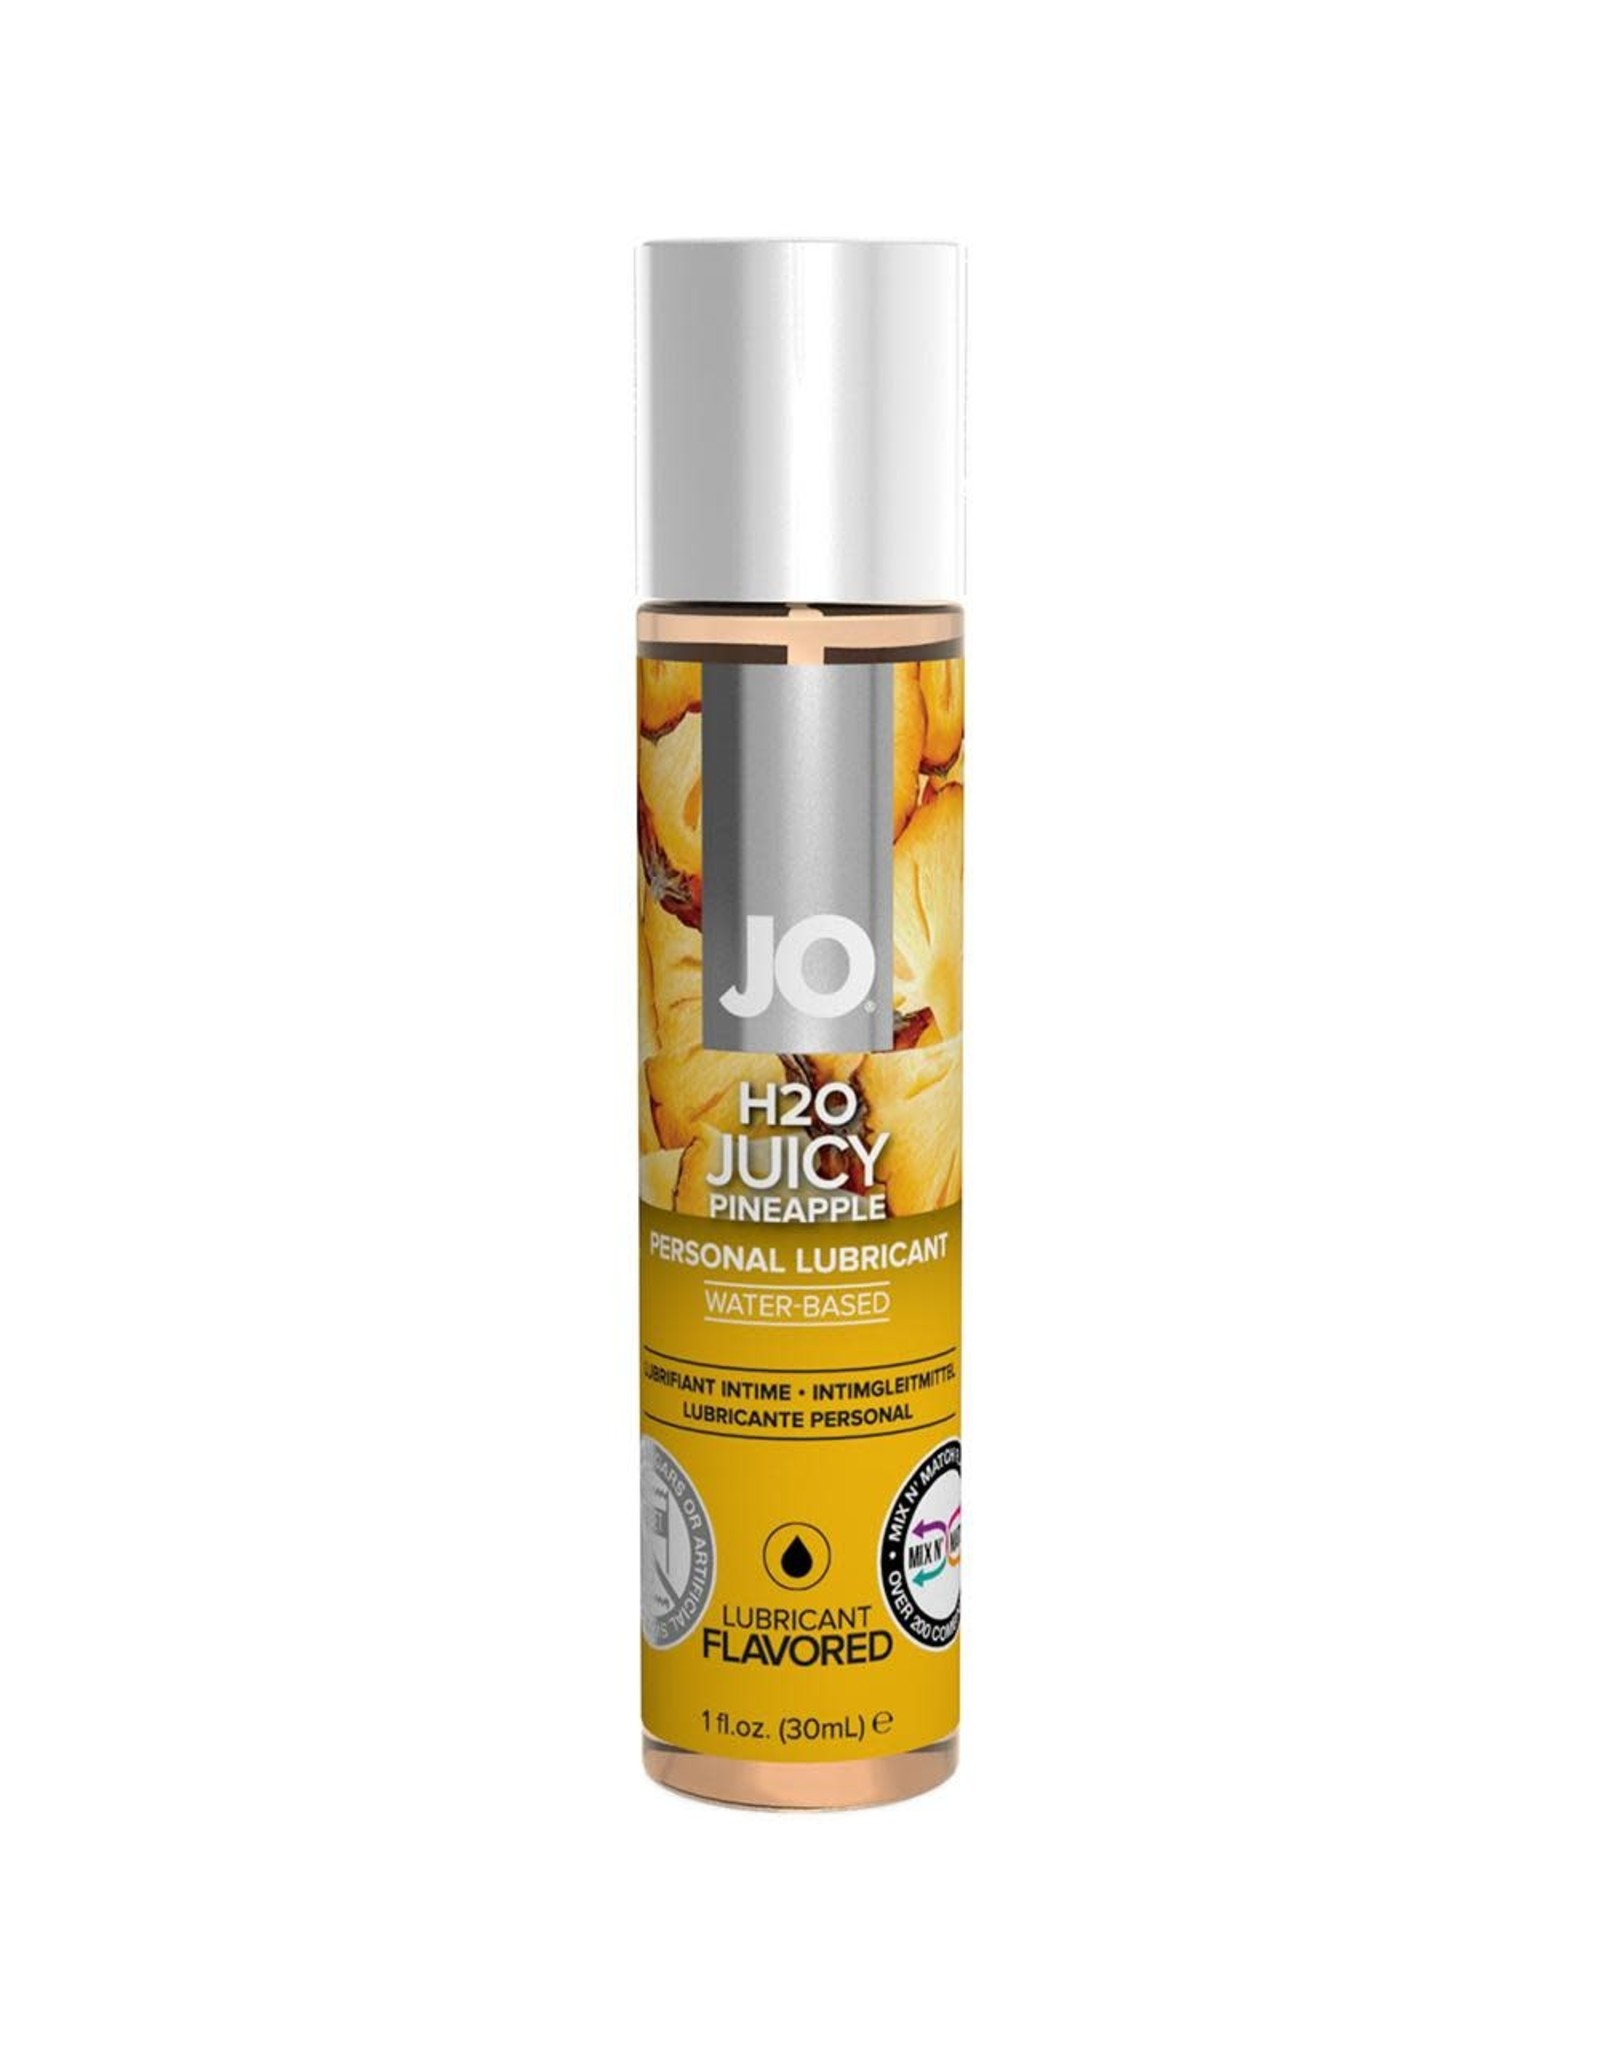 JO - H2O - FLAVOURED LUBRICANT - JUICY PINEAPPLE - 1 oz